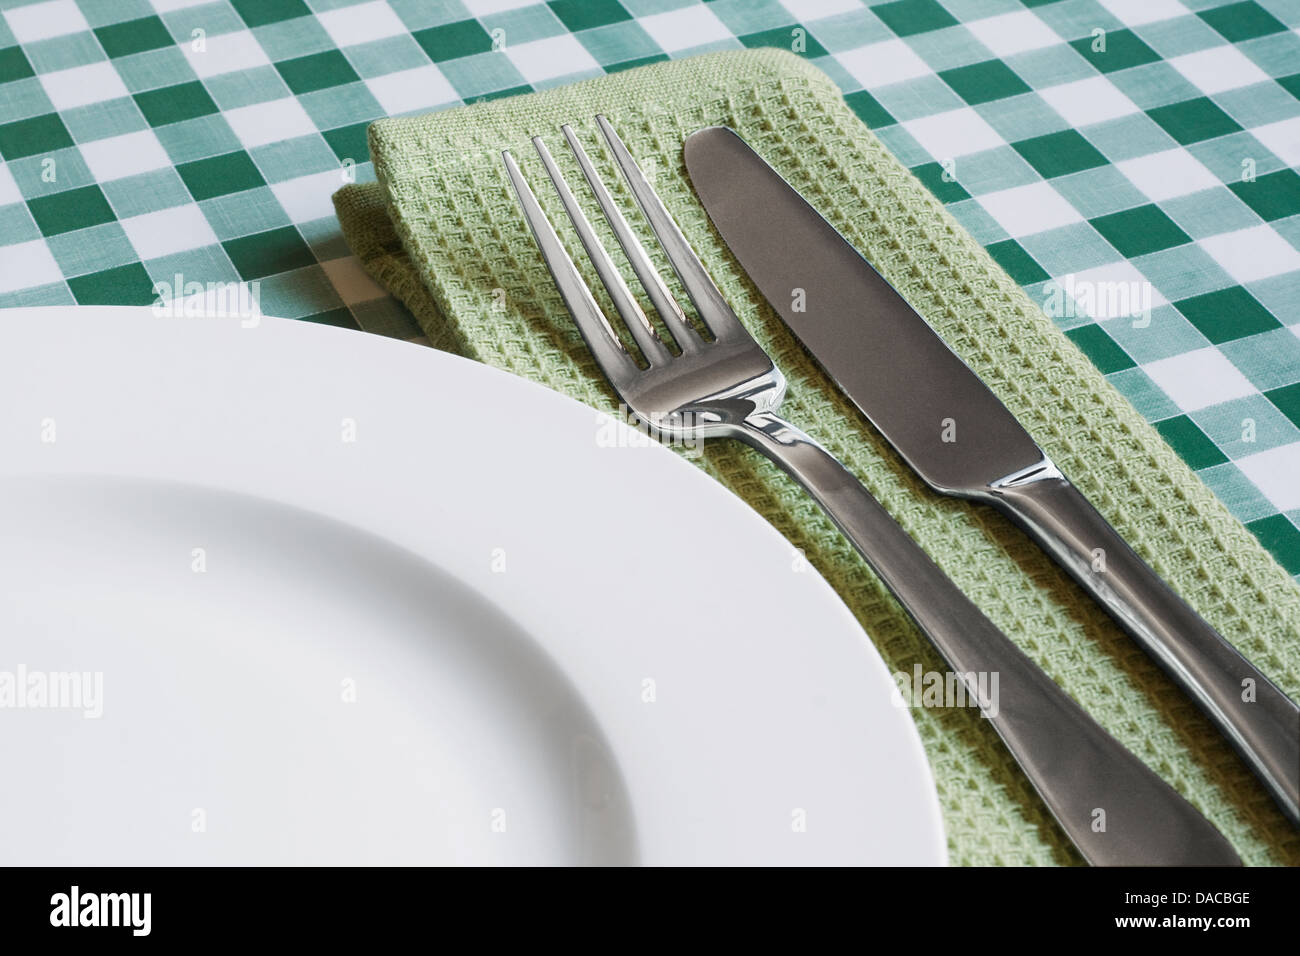 place setting with empty plate, knife and fork on a green gingham background popular symbol for diners and cafes - Stock Image